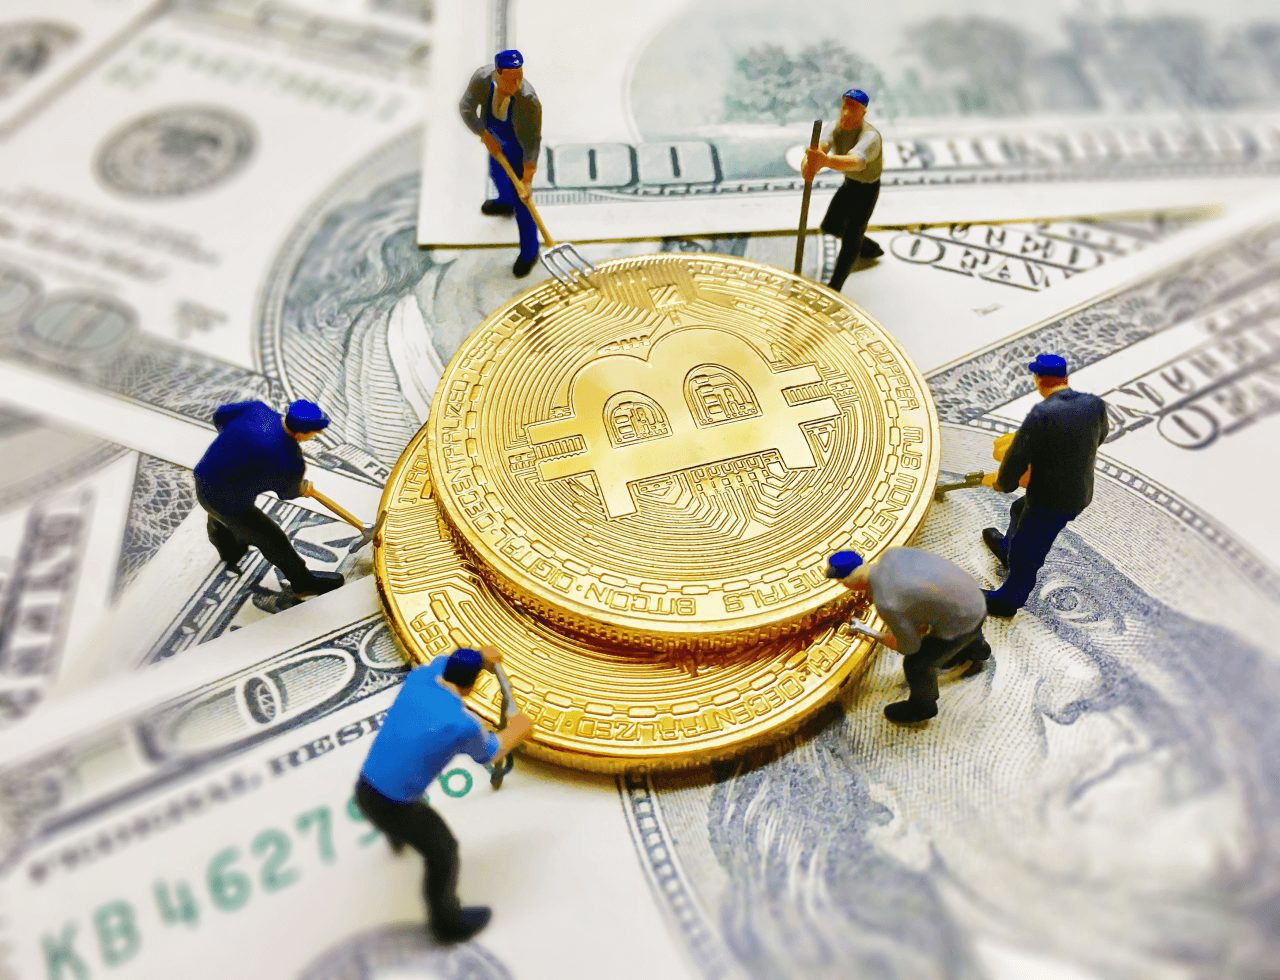 worker-figures-helping-dig-coin-money-dollar-note-background (1)